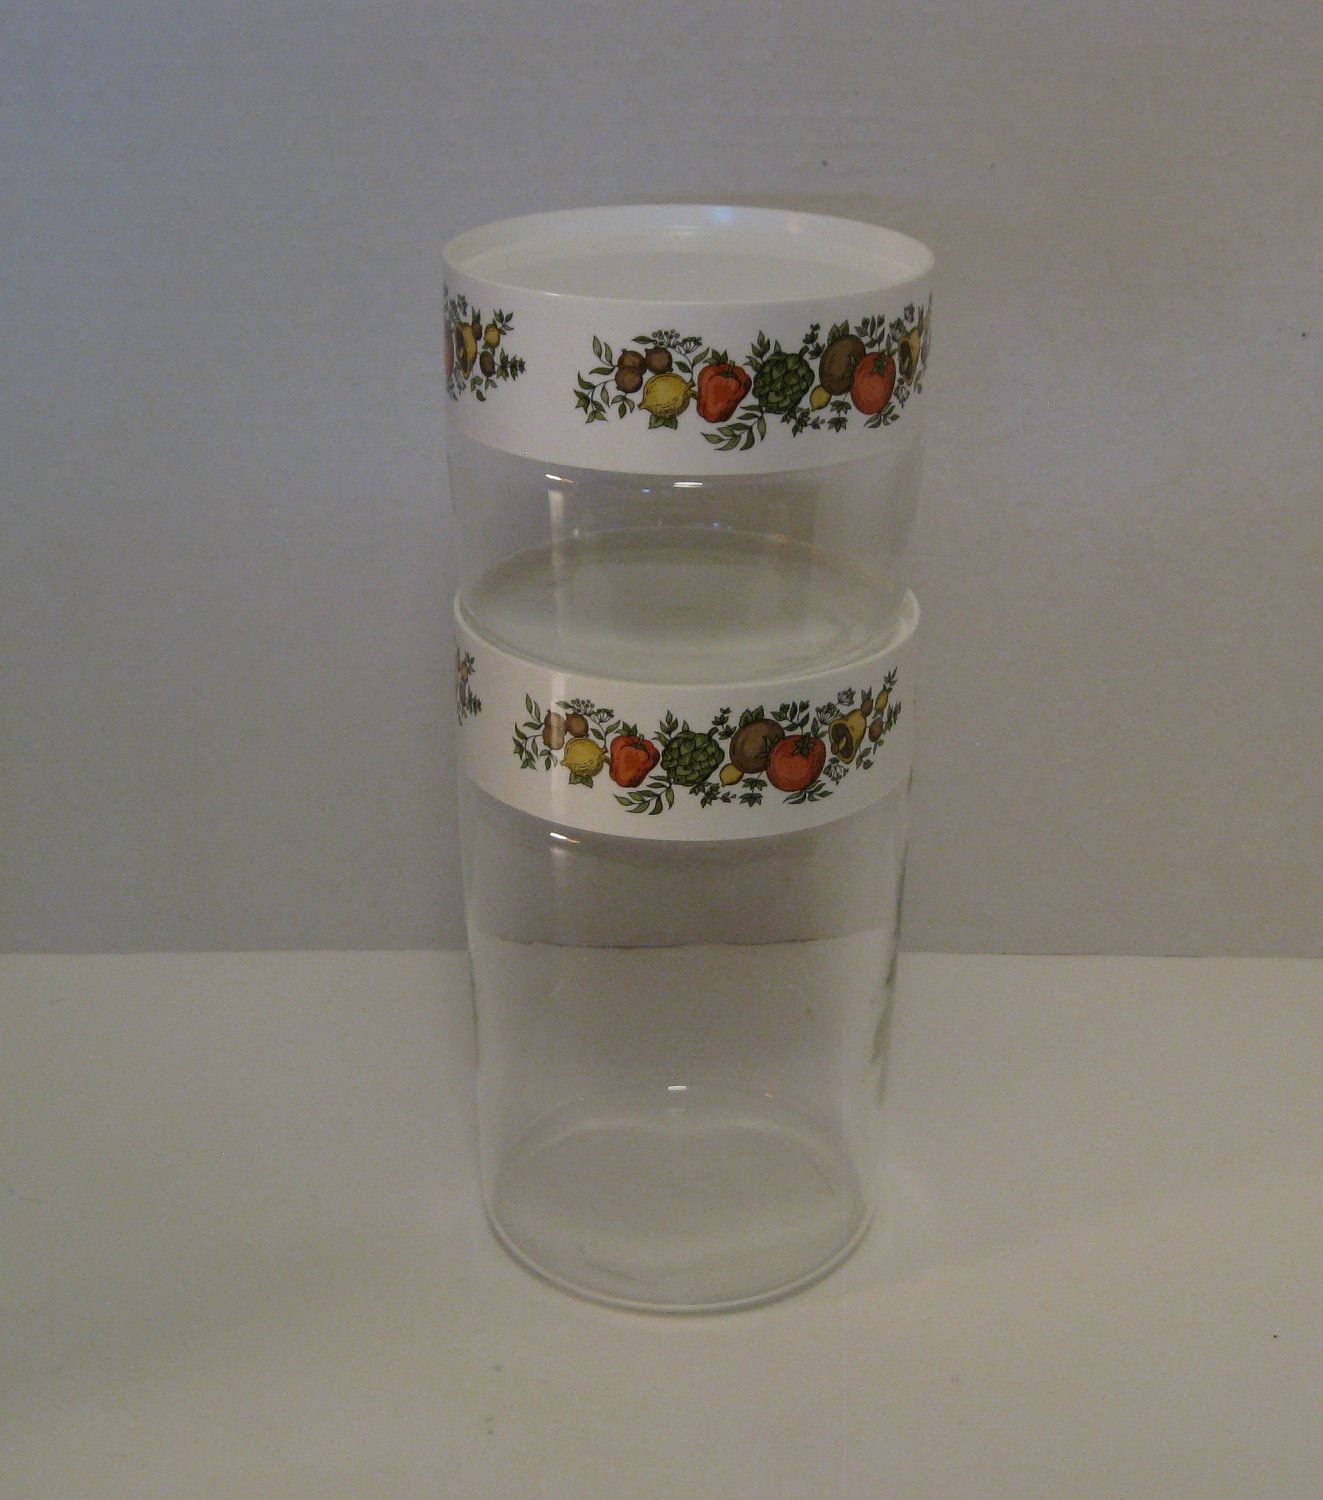 vintage corning ware spice of life store and see canisters pyrex vintage corning ware spice of life store and see canisters pyrex set of two